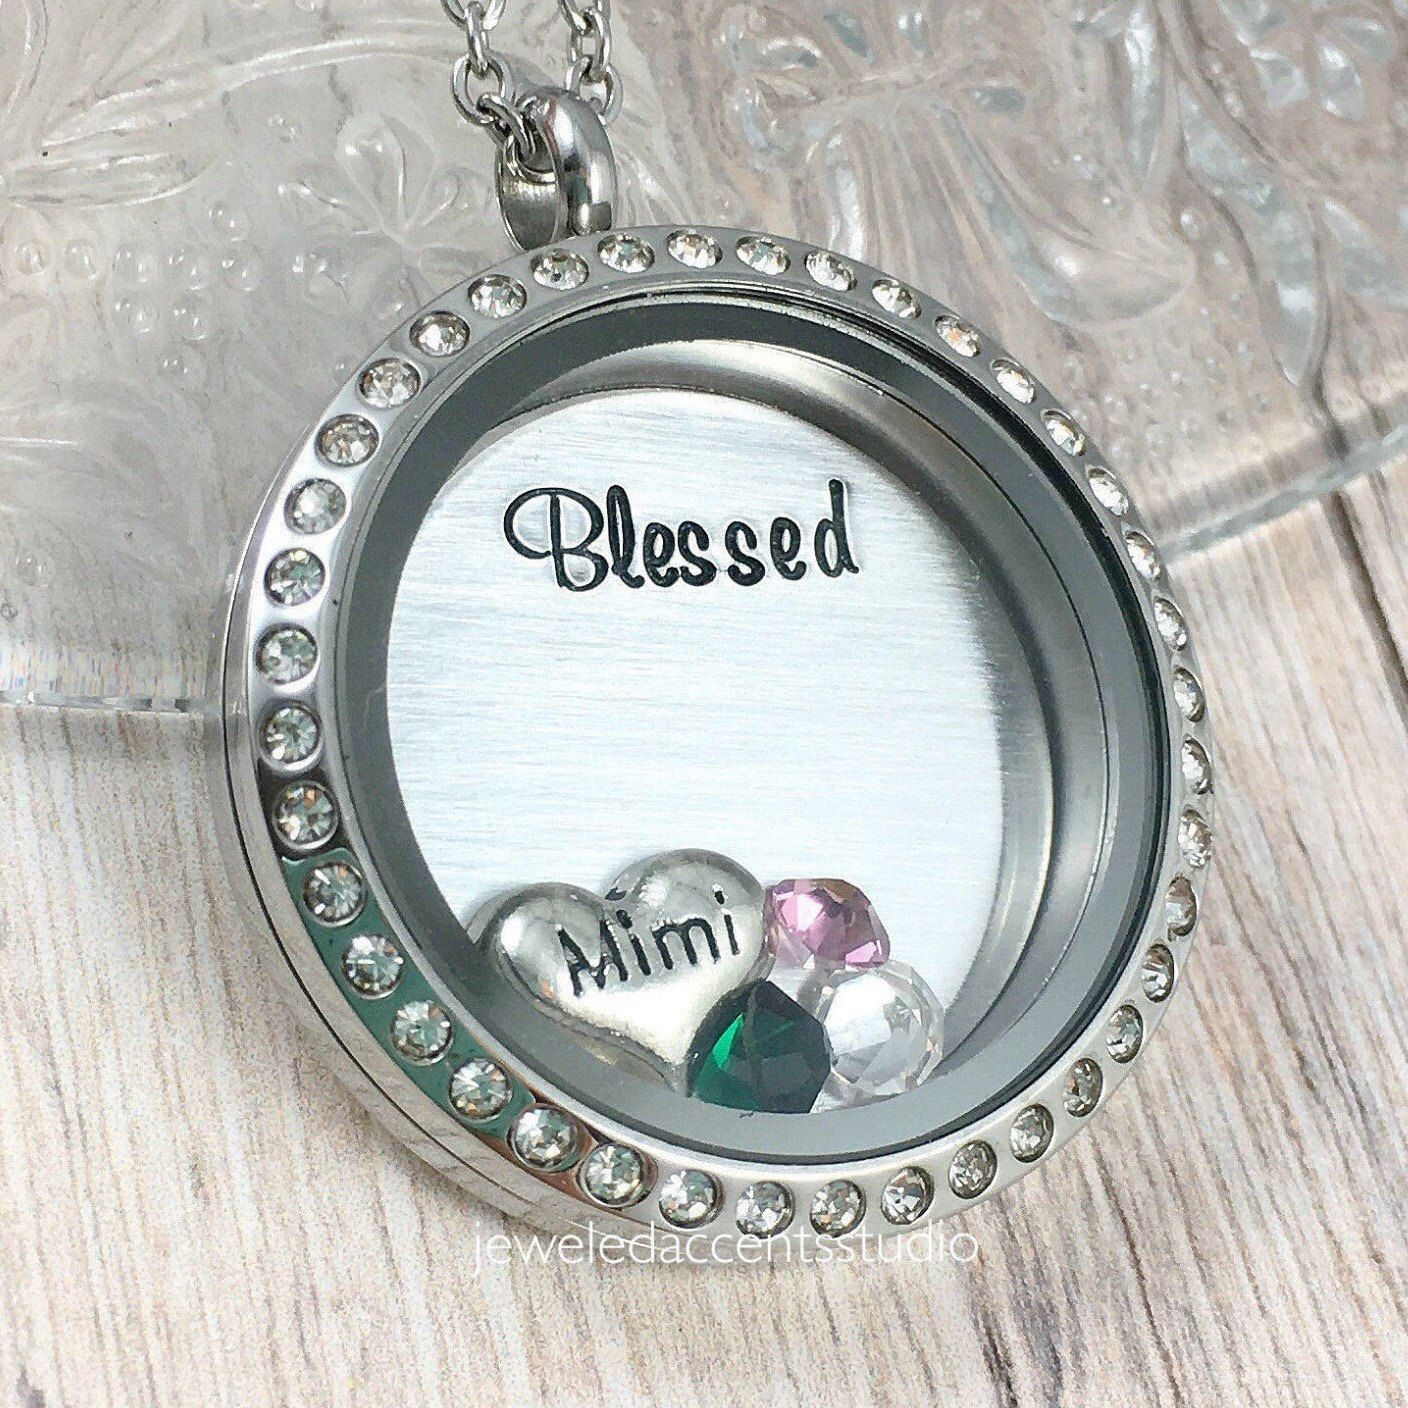 grandma pewter gifts with personalized products birthstones birthstone and stones grandkid heart heel nana collections mom necklace